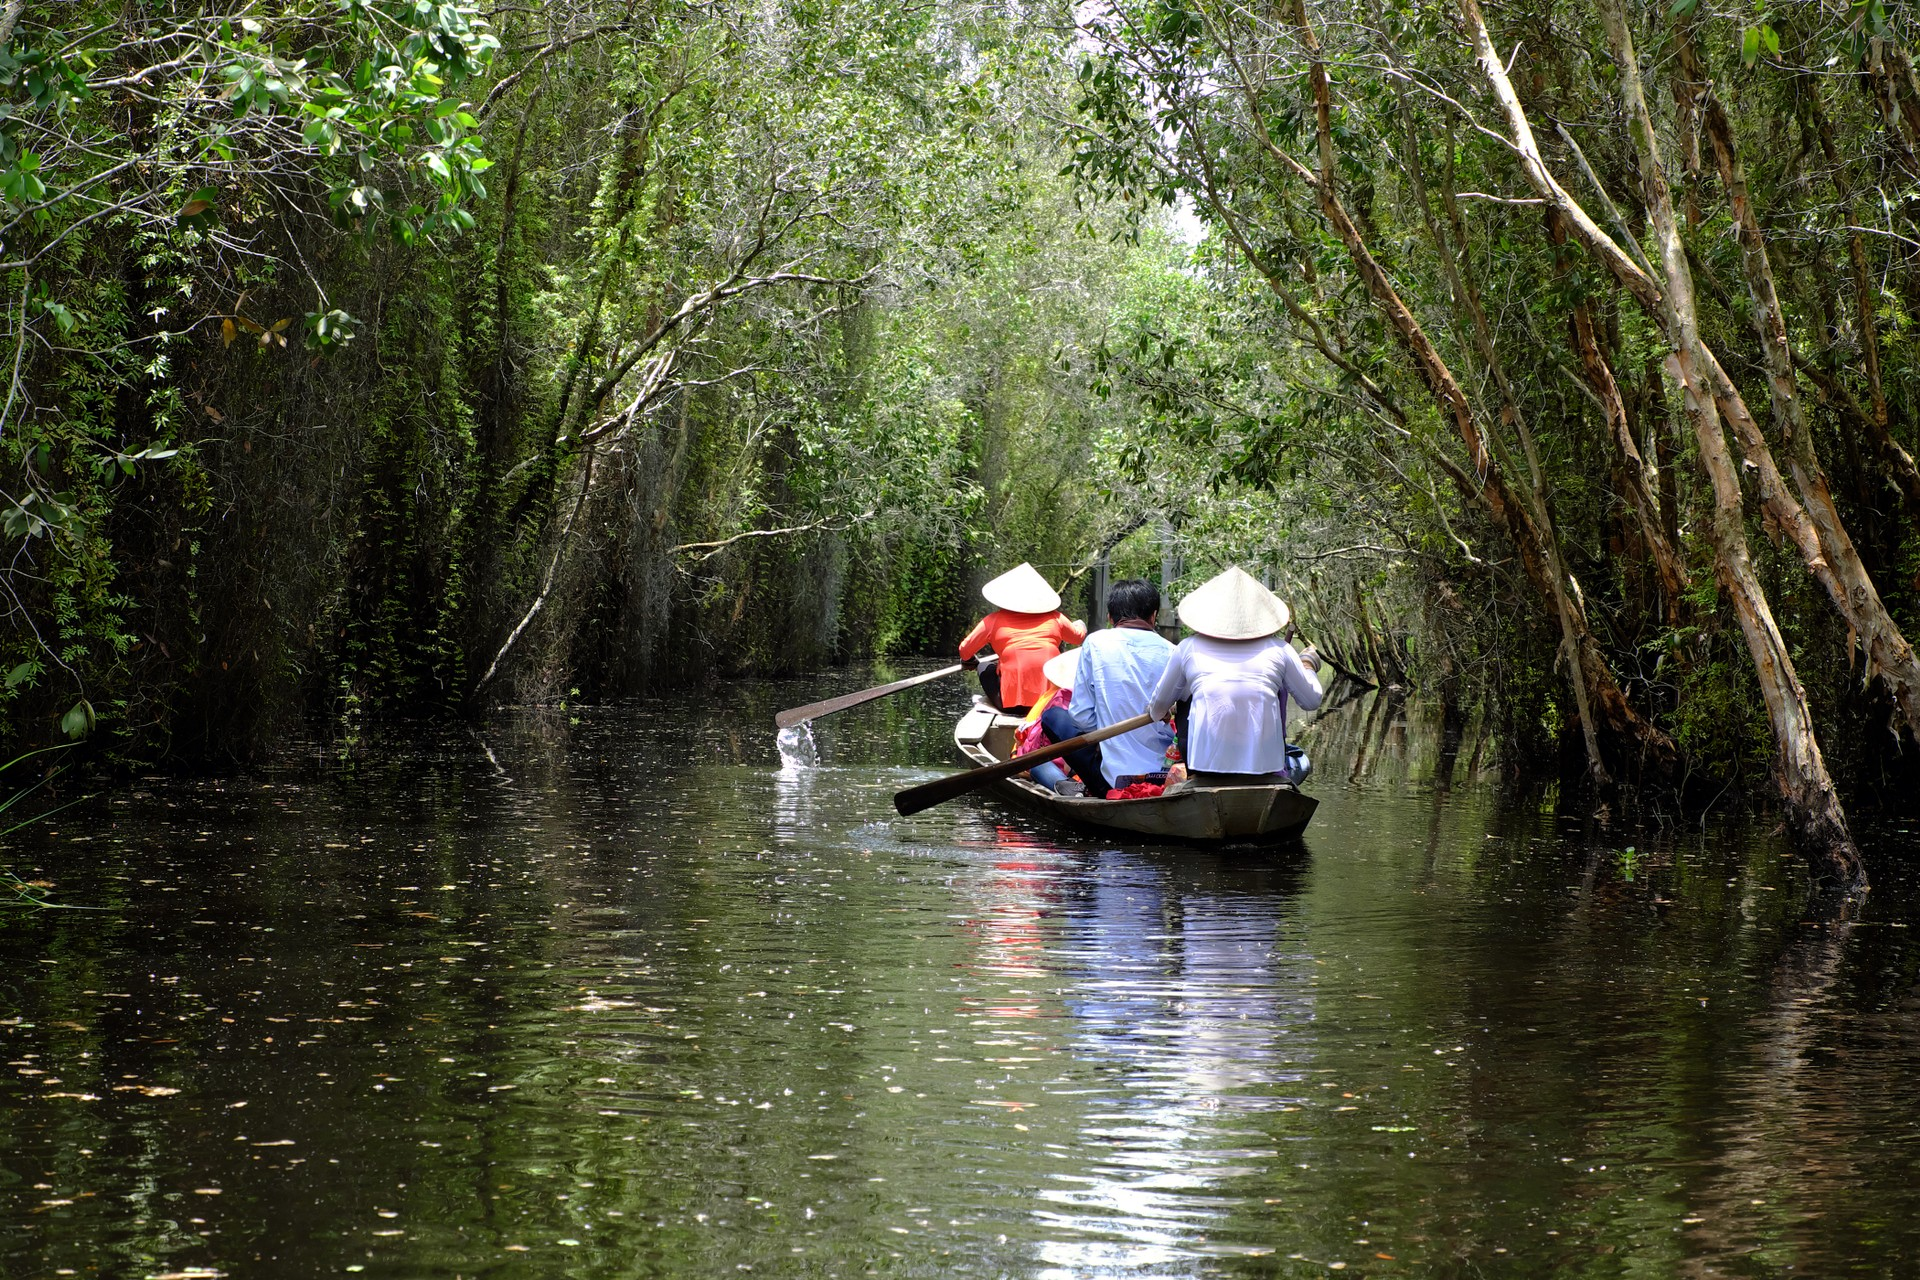 Boat trip in the Mekong Delta